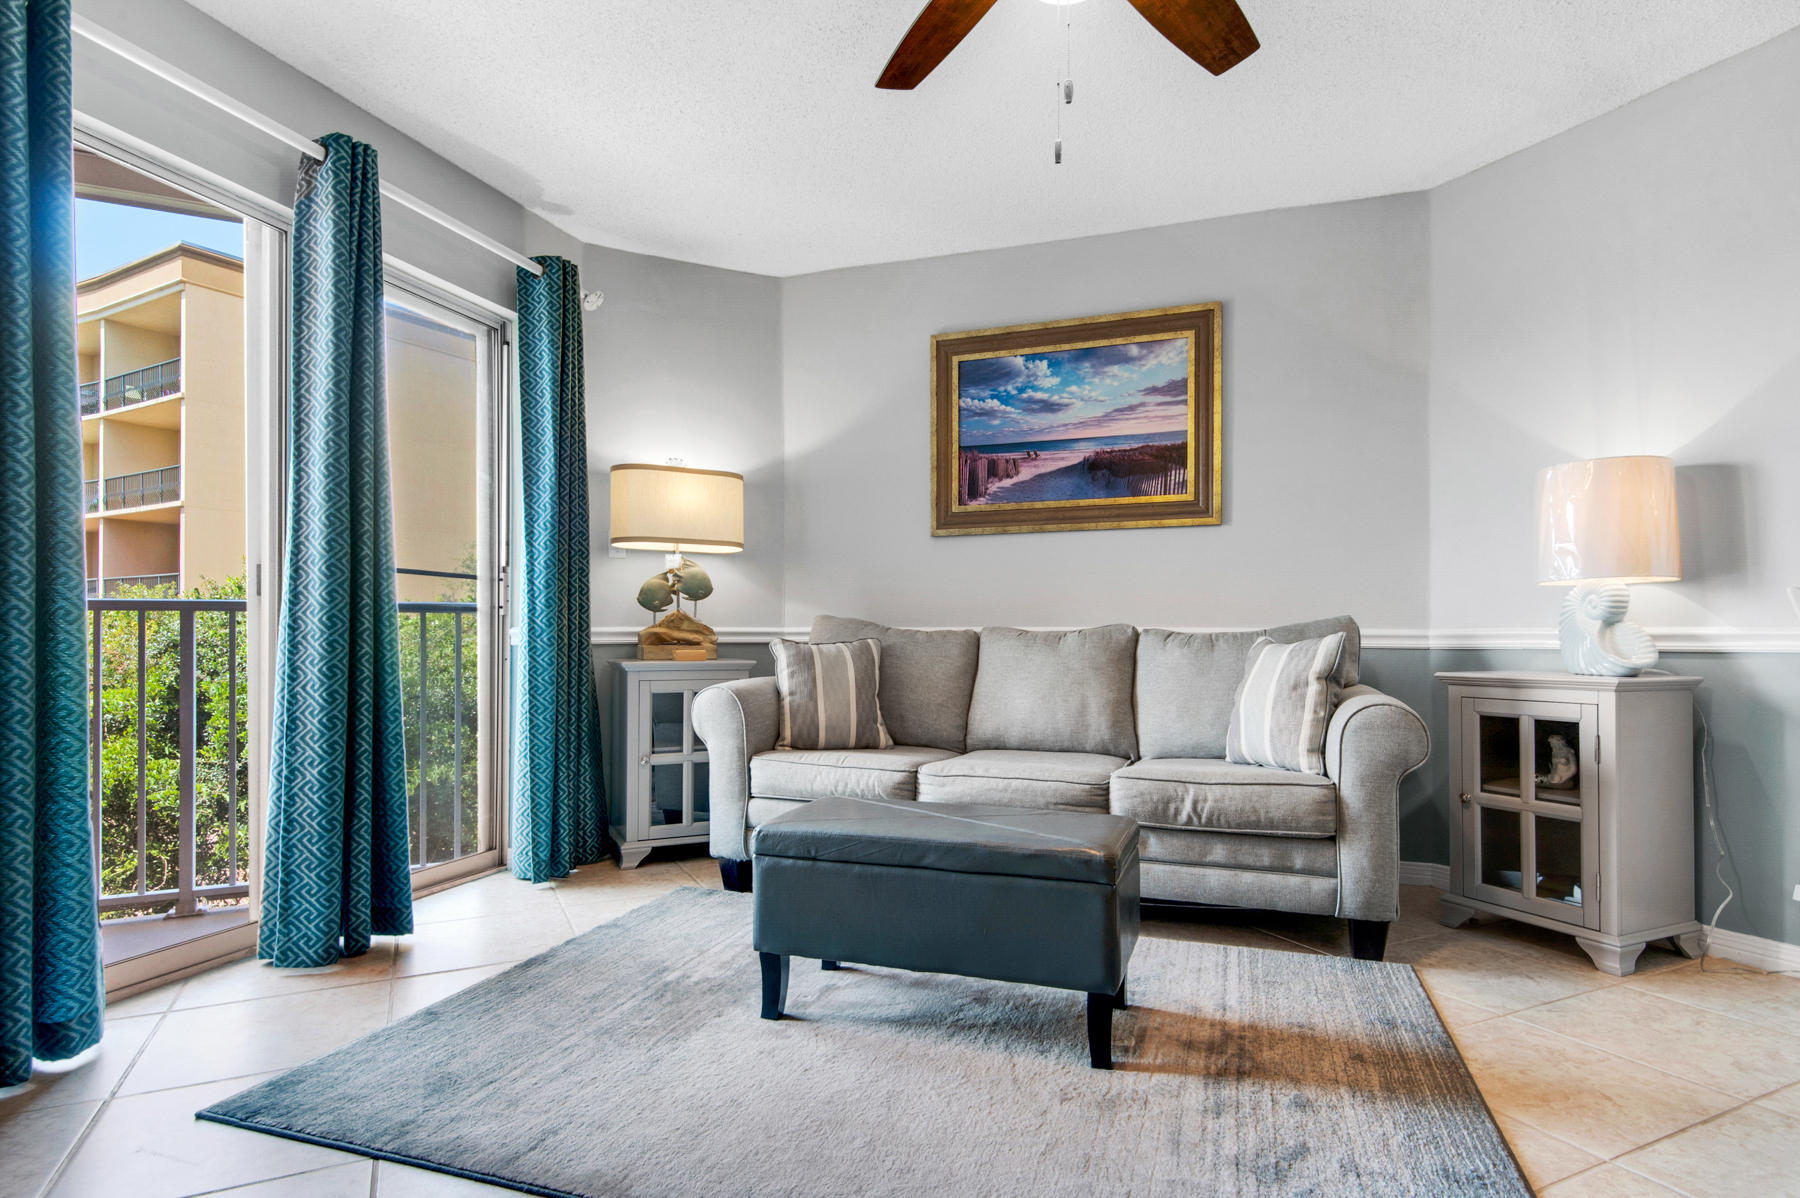 This condo in Gulfview II, conveniently located in the heart of Miramar Beach, opens up a world of vacations or rental income potential.  With deeded beach access directly across Scenic Gulf Drive to over 100 feet of beautiful beach, two community pools, hot tub and a grill area, owners and guests can enjoy the quintessential Florida lifestyle. Located in a low-density building, this one bedroom condo has been updated to include tile flooring throughout as well as a stylish kitchen that features modern raised panel cabinets and stainless steel appliances.  The condo also features built-in bunk beds in the hallway. The living area features a large sliding glass door which allows for ample natural light and opens to the private balcony - The perfect place to relax after a day at the beach.